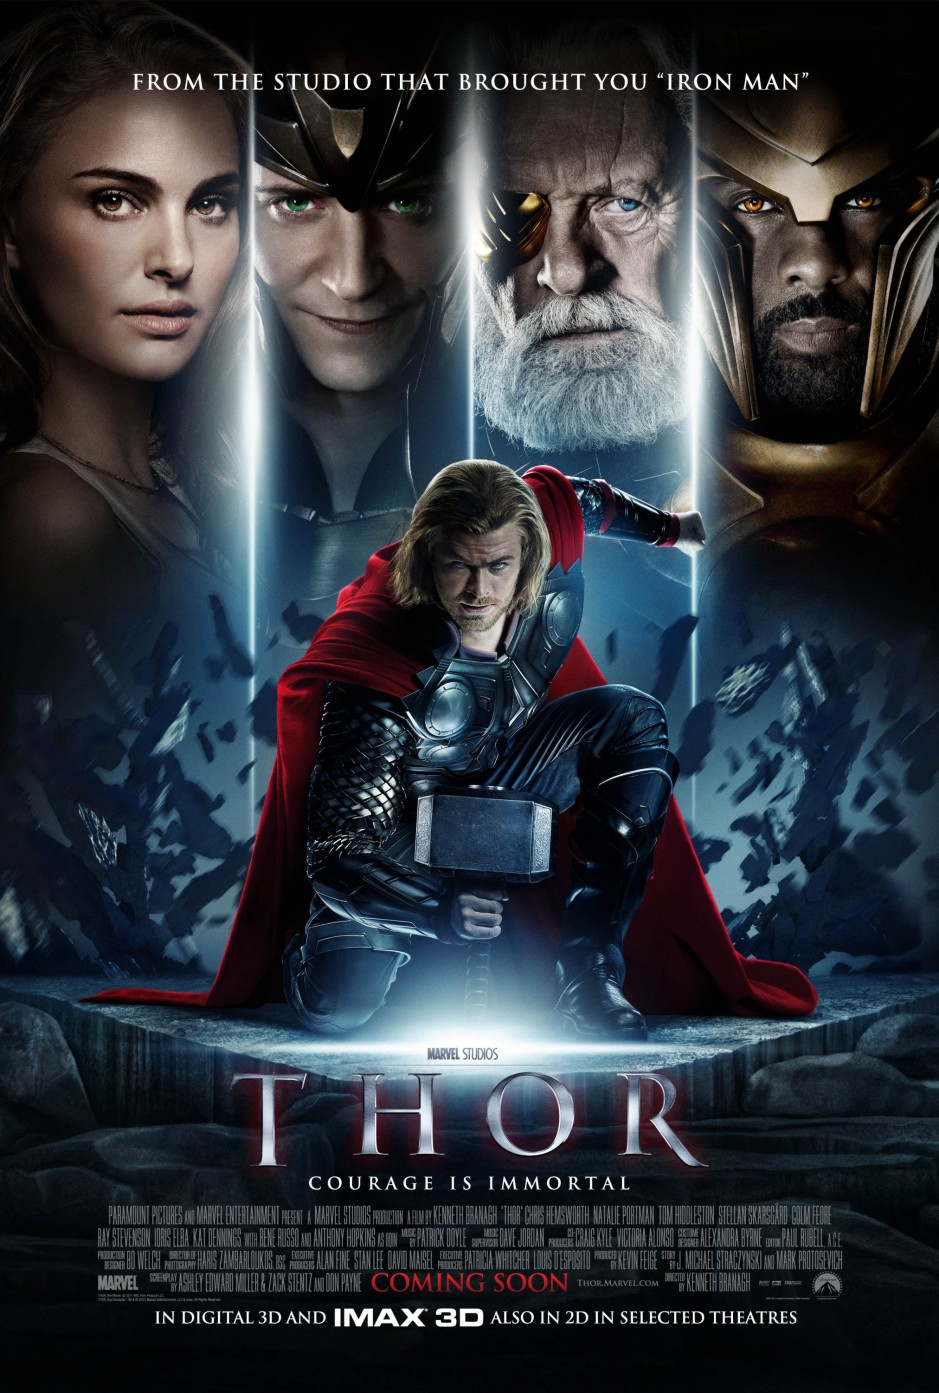 thor-movie-poster-marvel-cinematic-universe-1038890